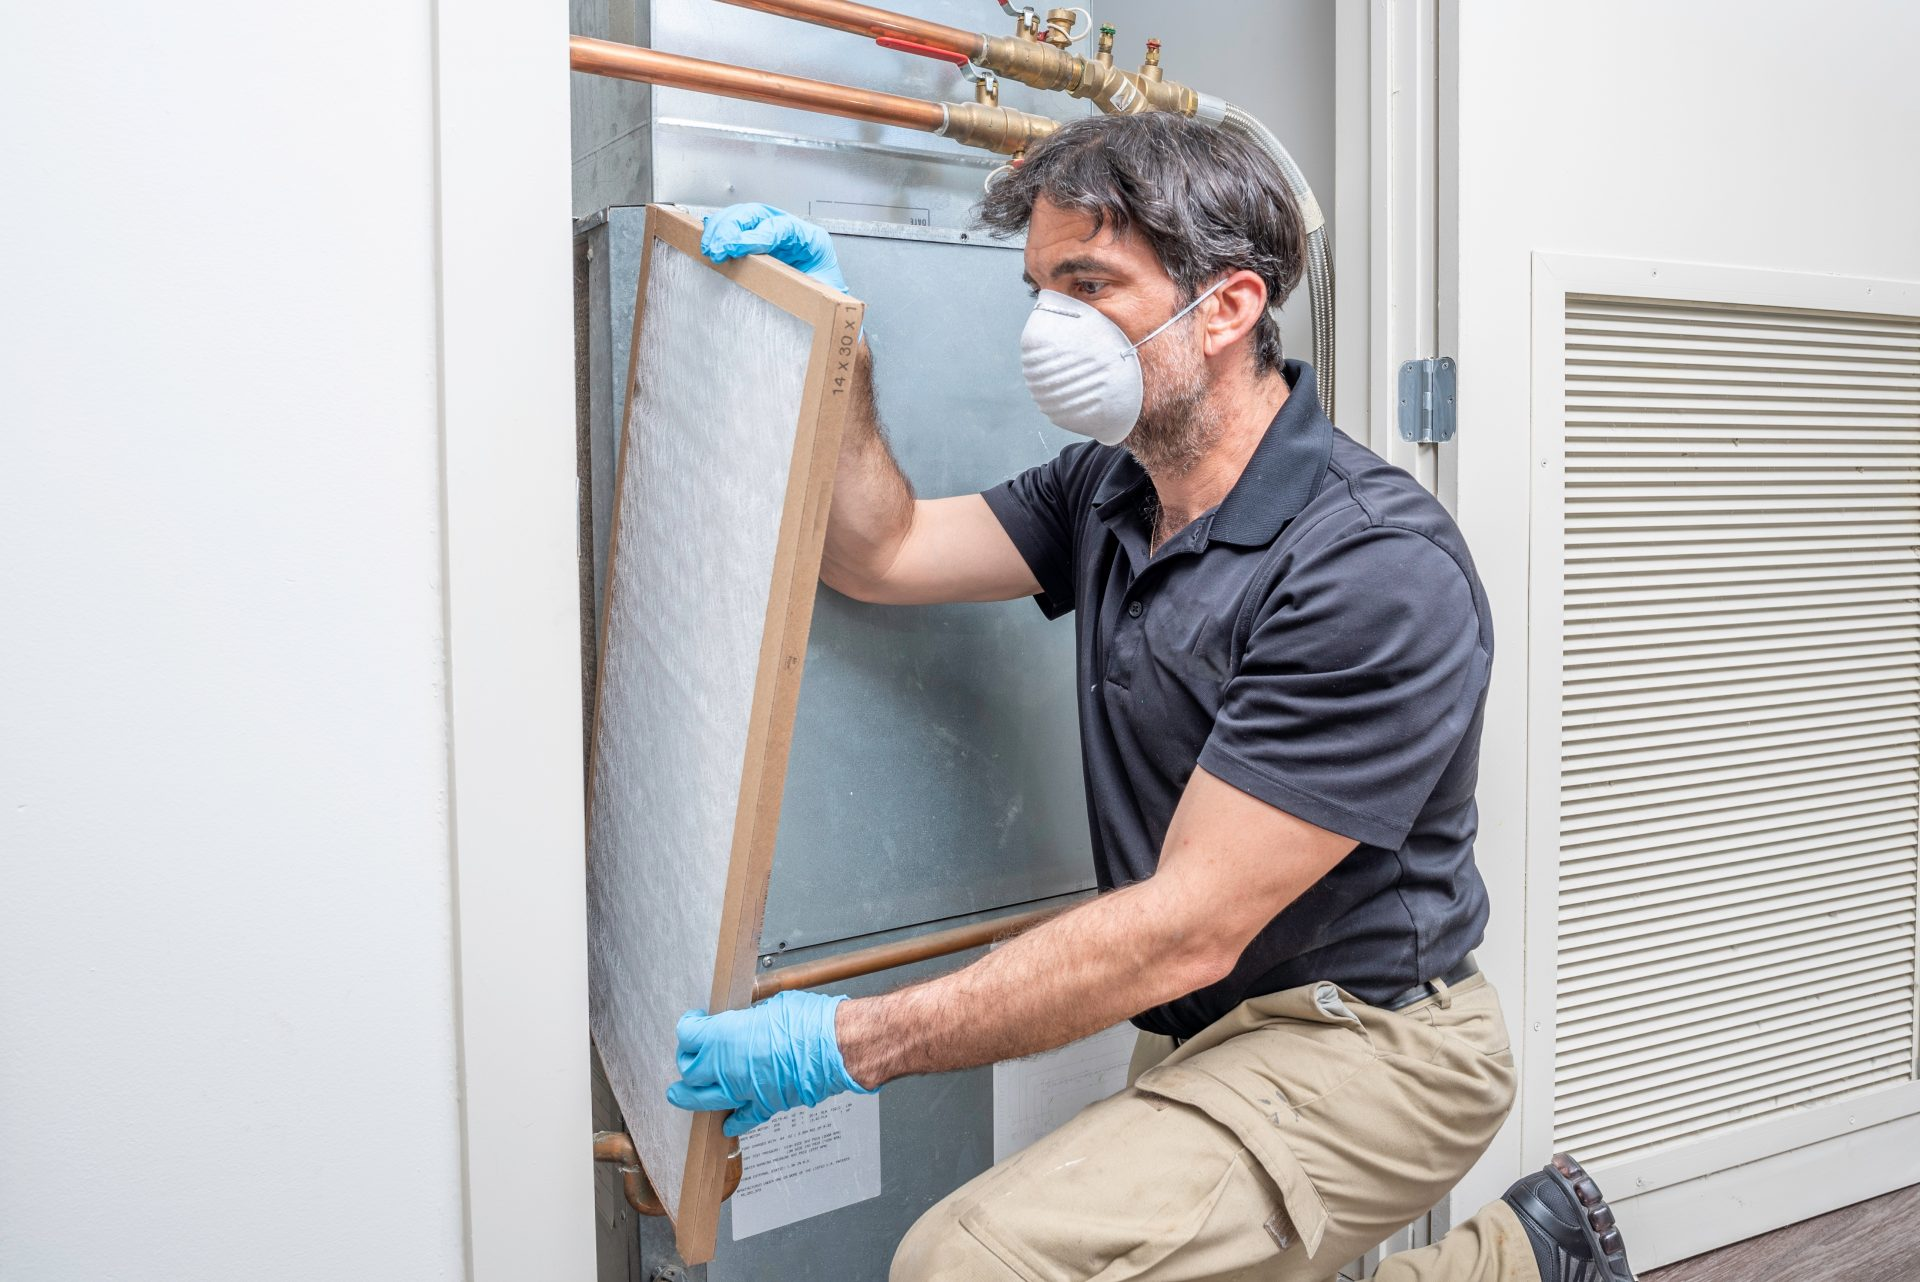 save money on your energy bills, change out air filters